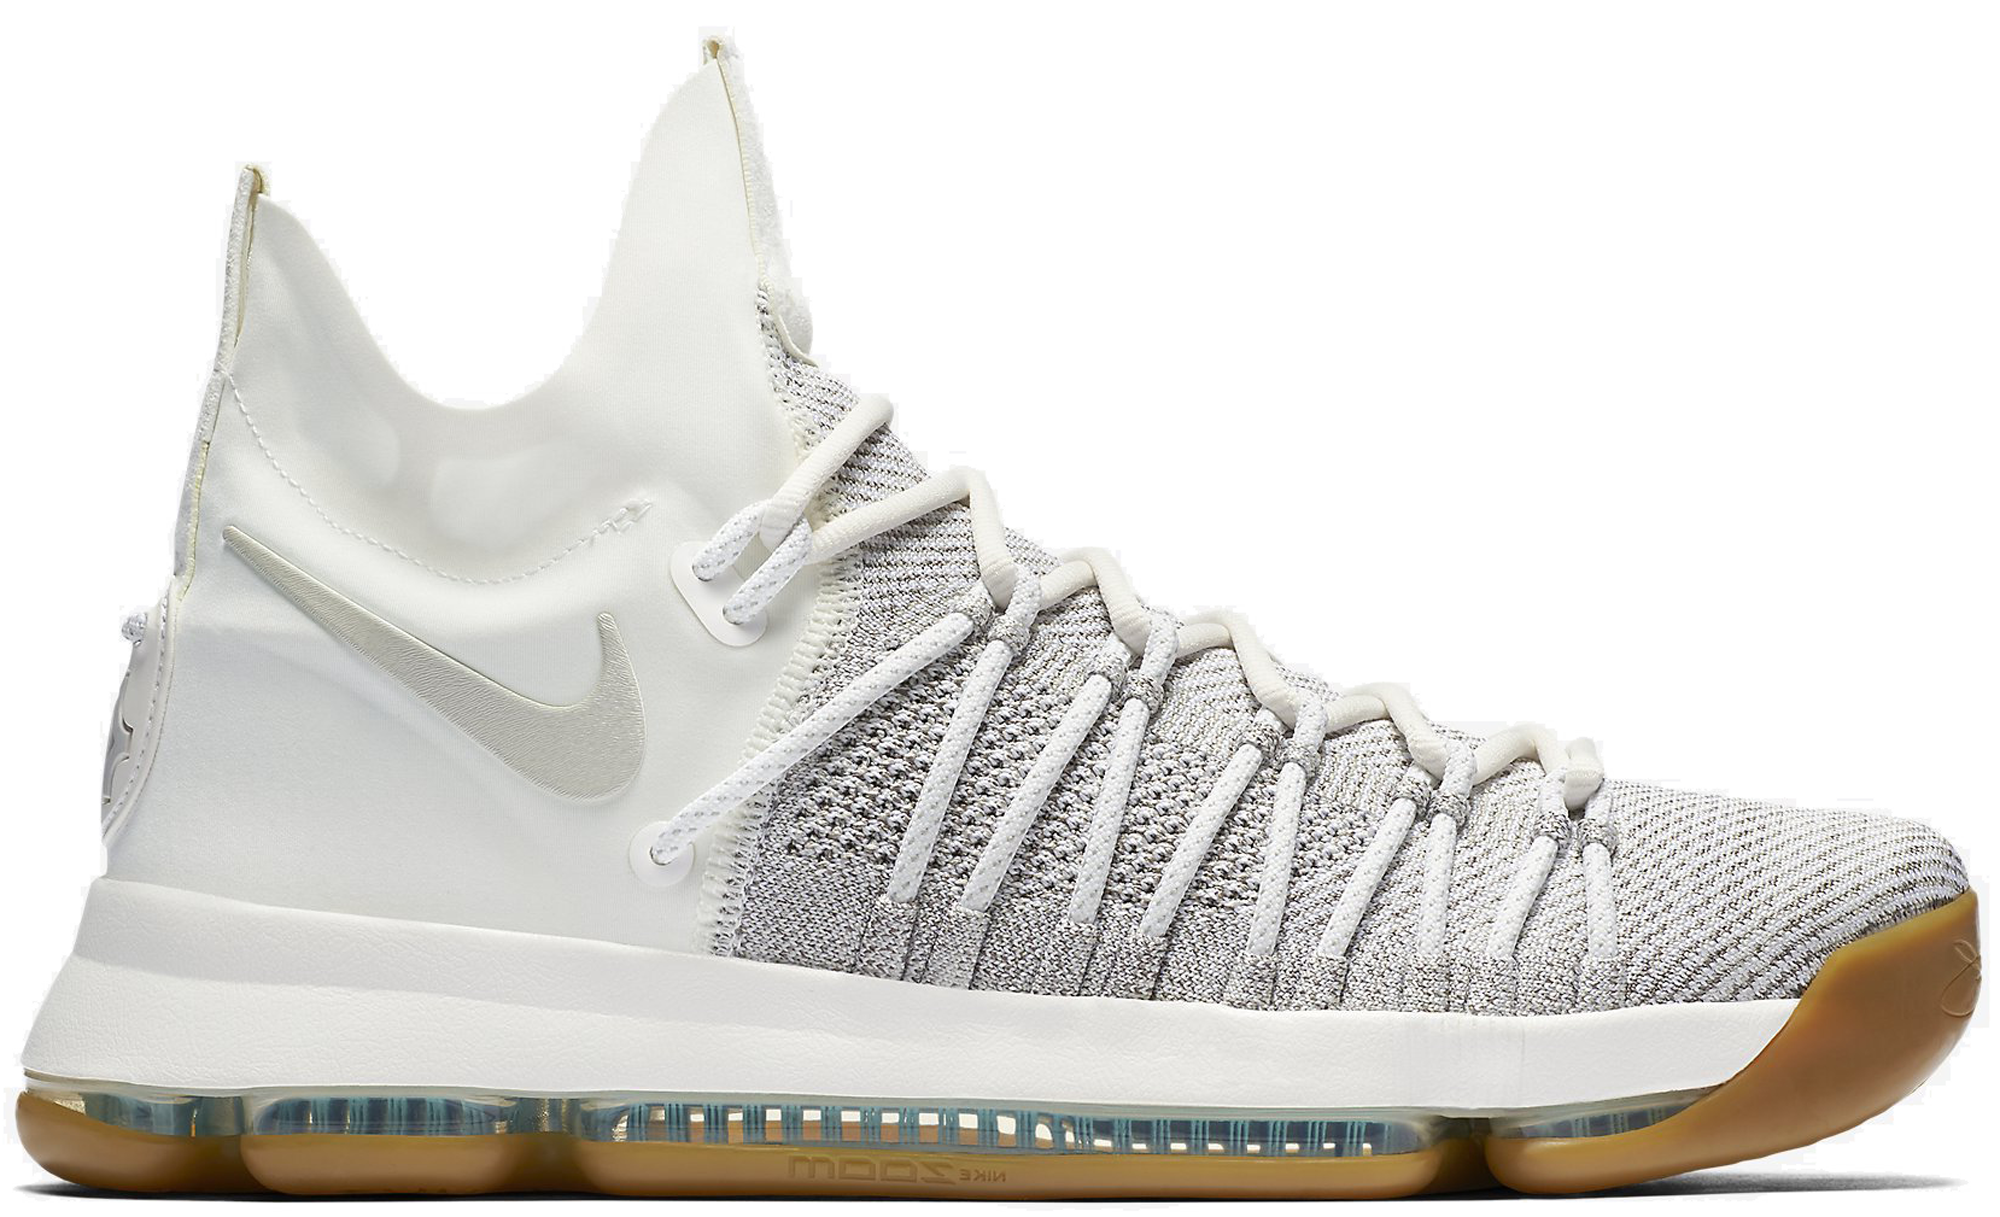 bf1ef92cc99c7 ... sweden nike kd 9 elite pale grey summer pack 2017 76636 714da